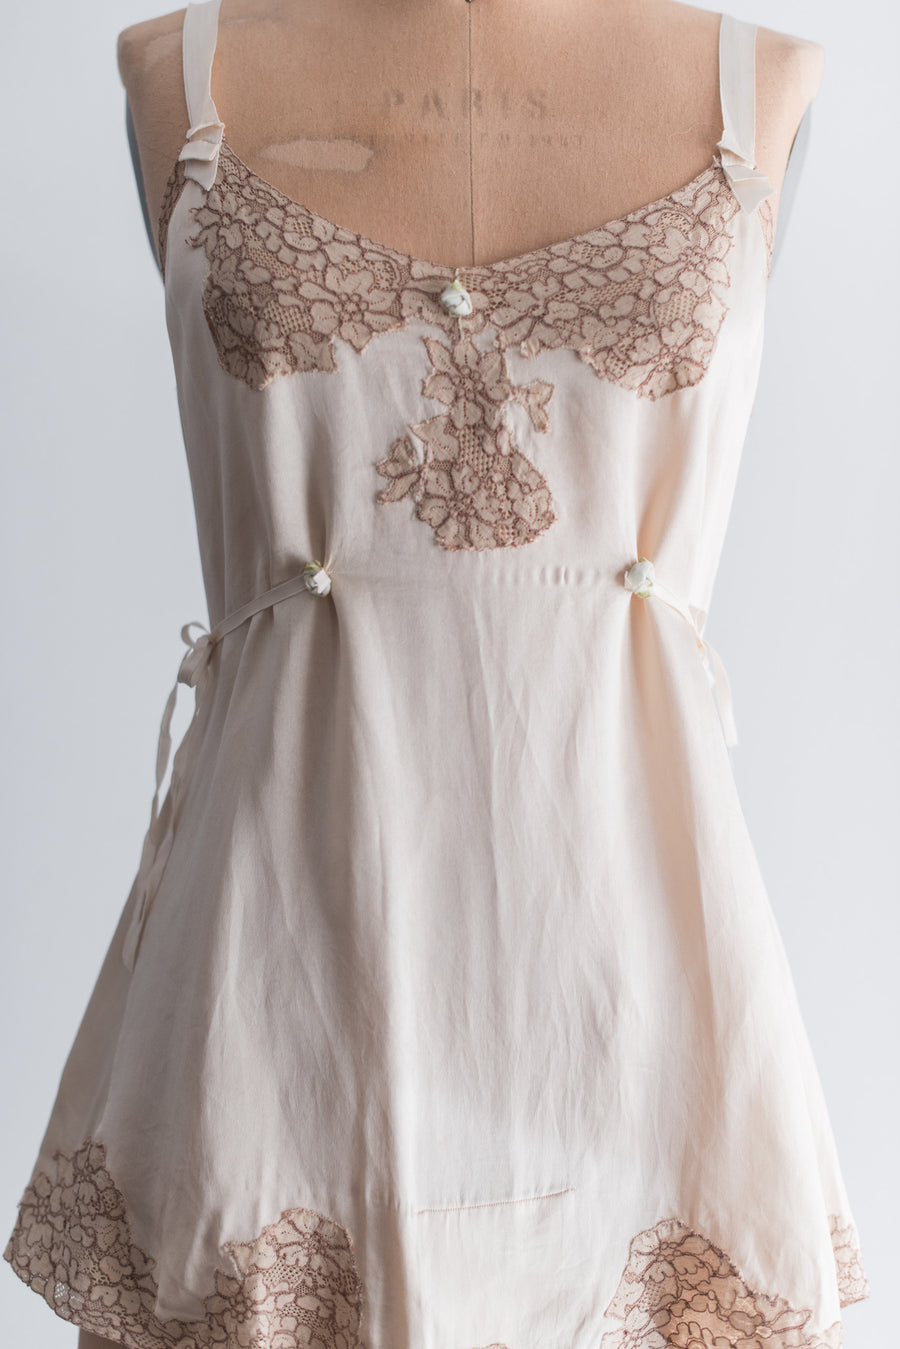 1920s Silk and Lace Romper - M